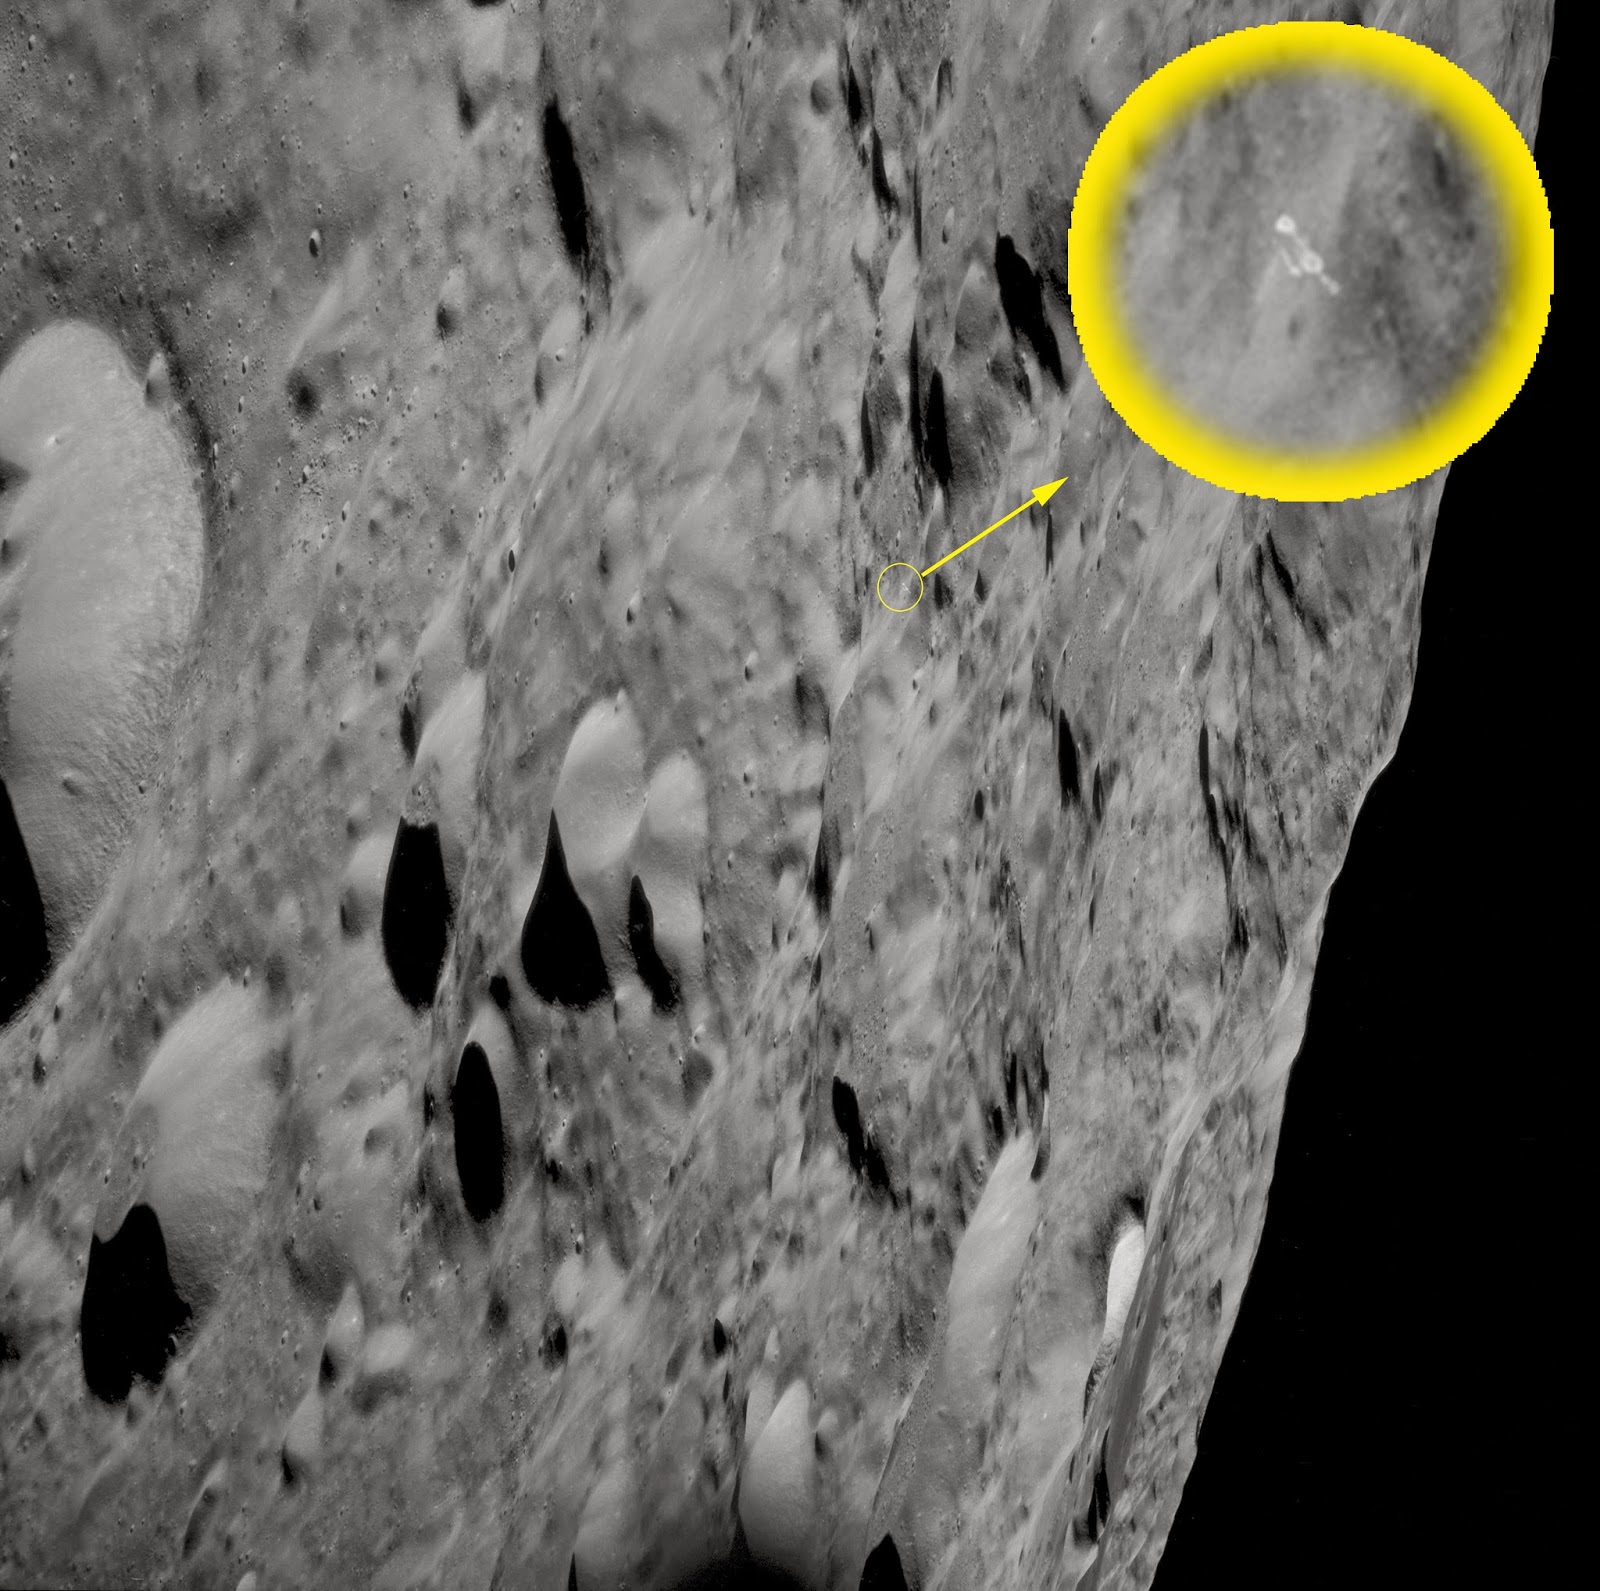 UFO mania: Alien Base Discovered In NASA Moon Photo on the ...